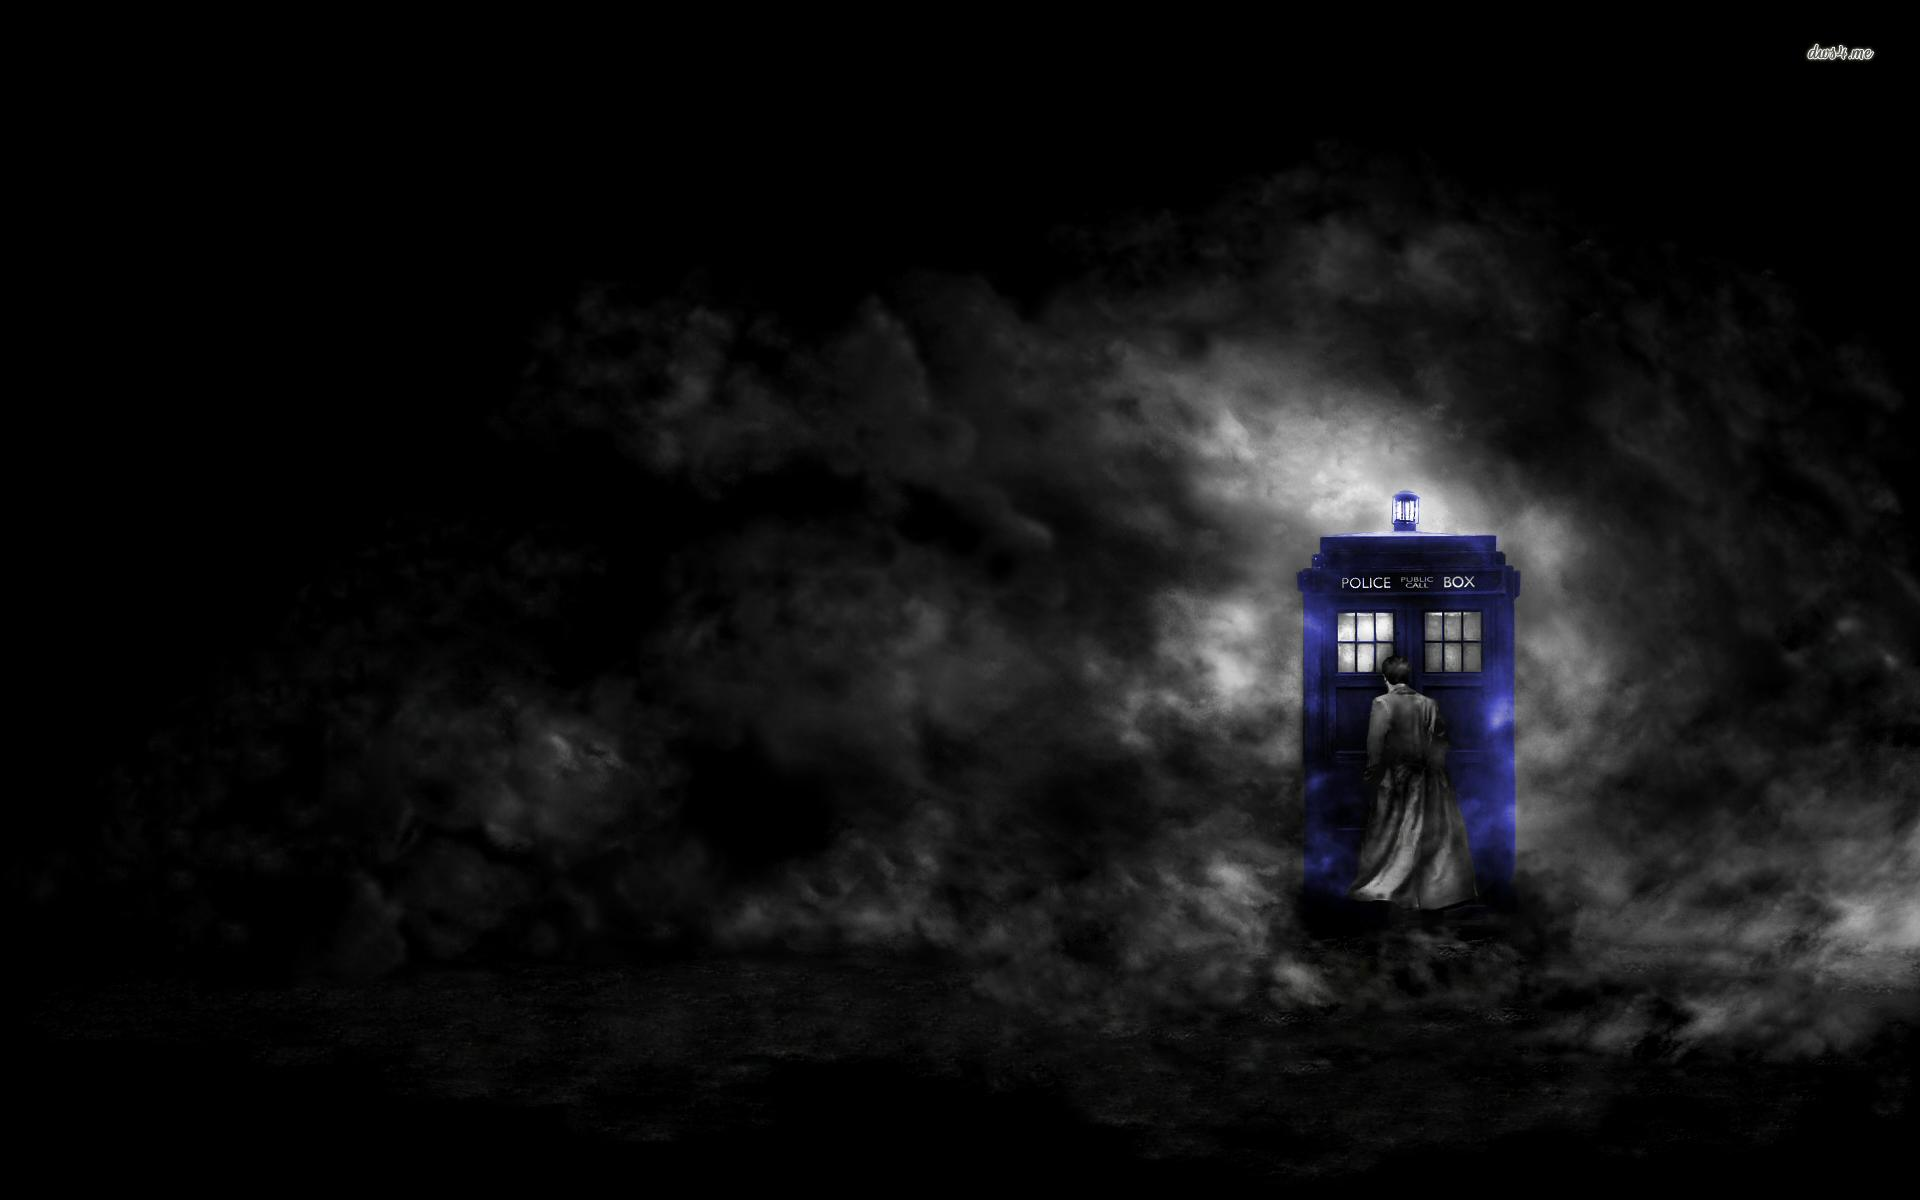 tardis images hd wallpaper - photo #6